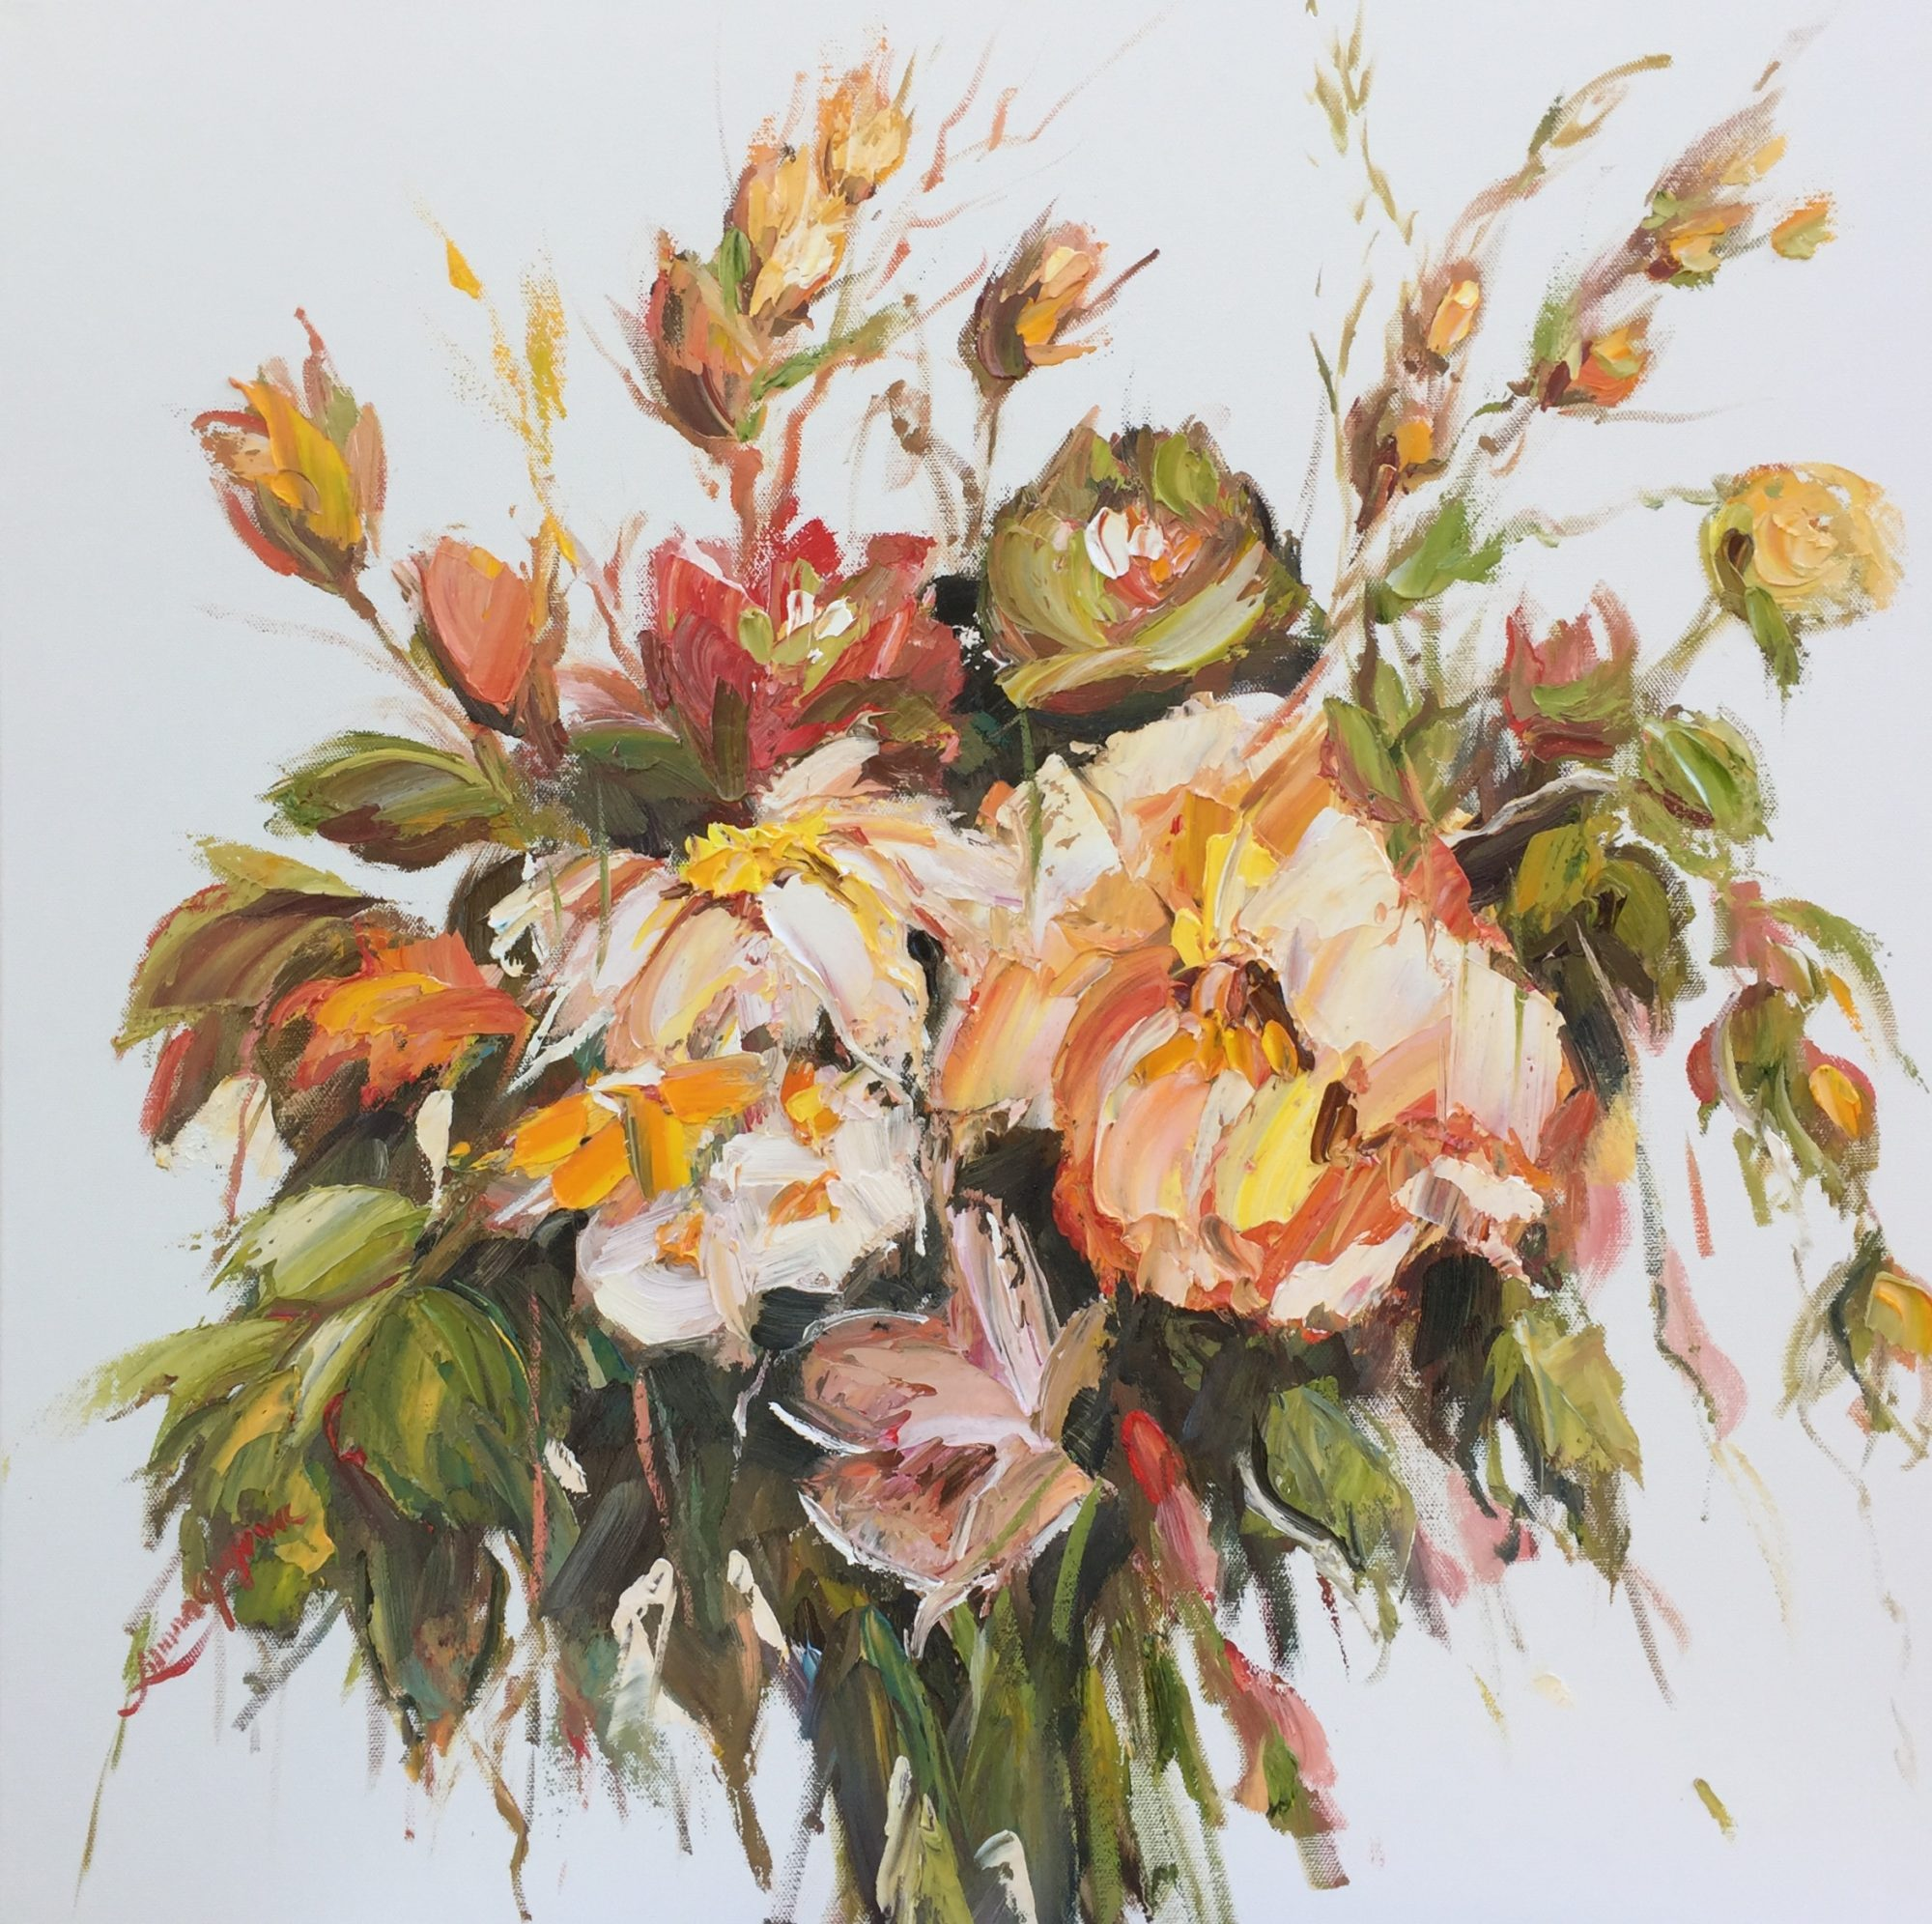 40- An autumn touch,61x61cm, $700